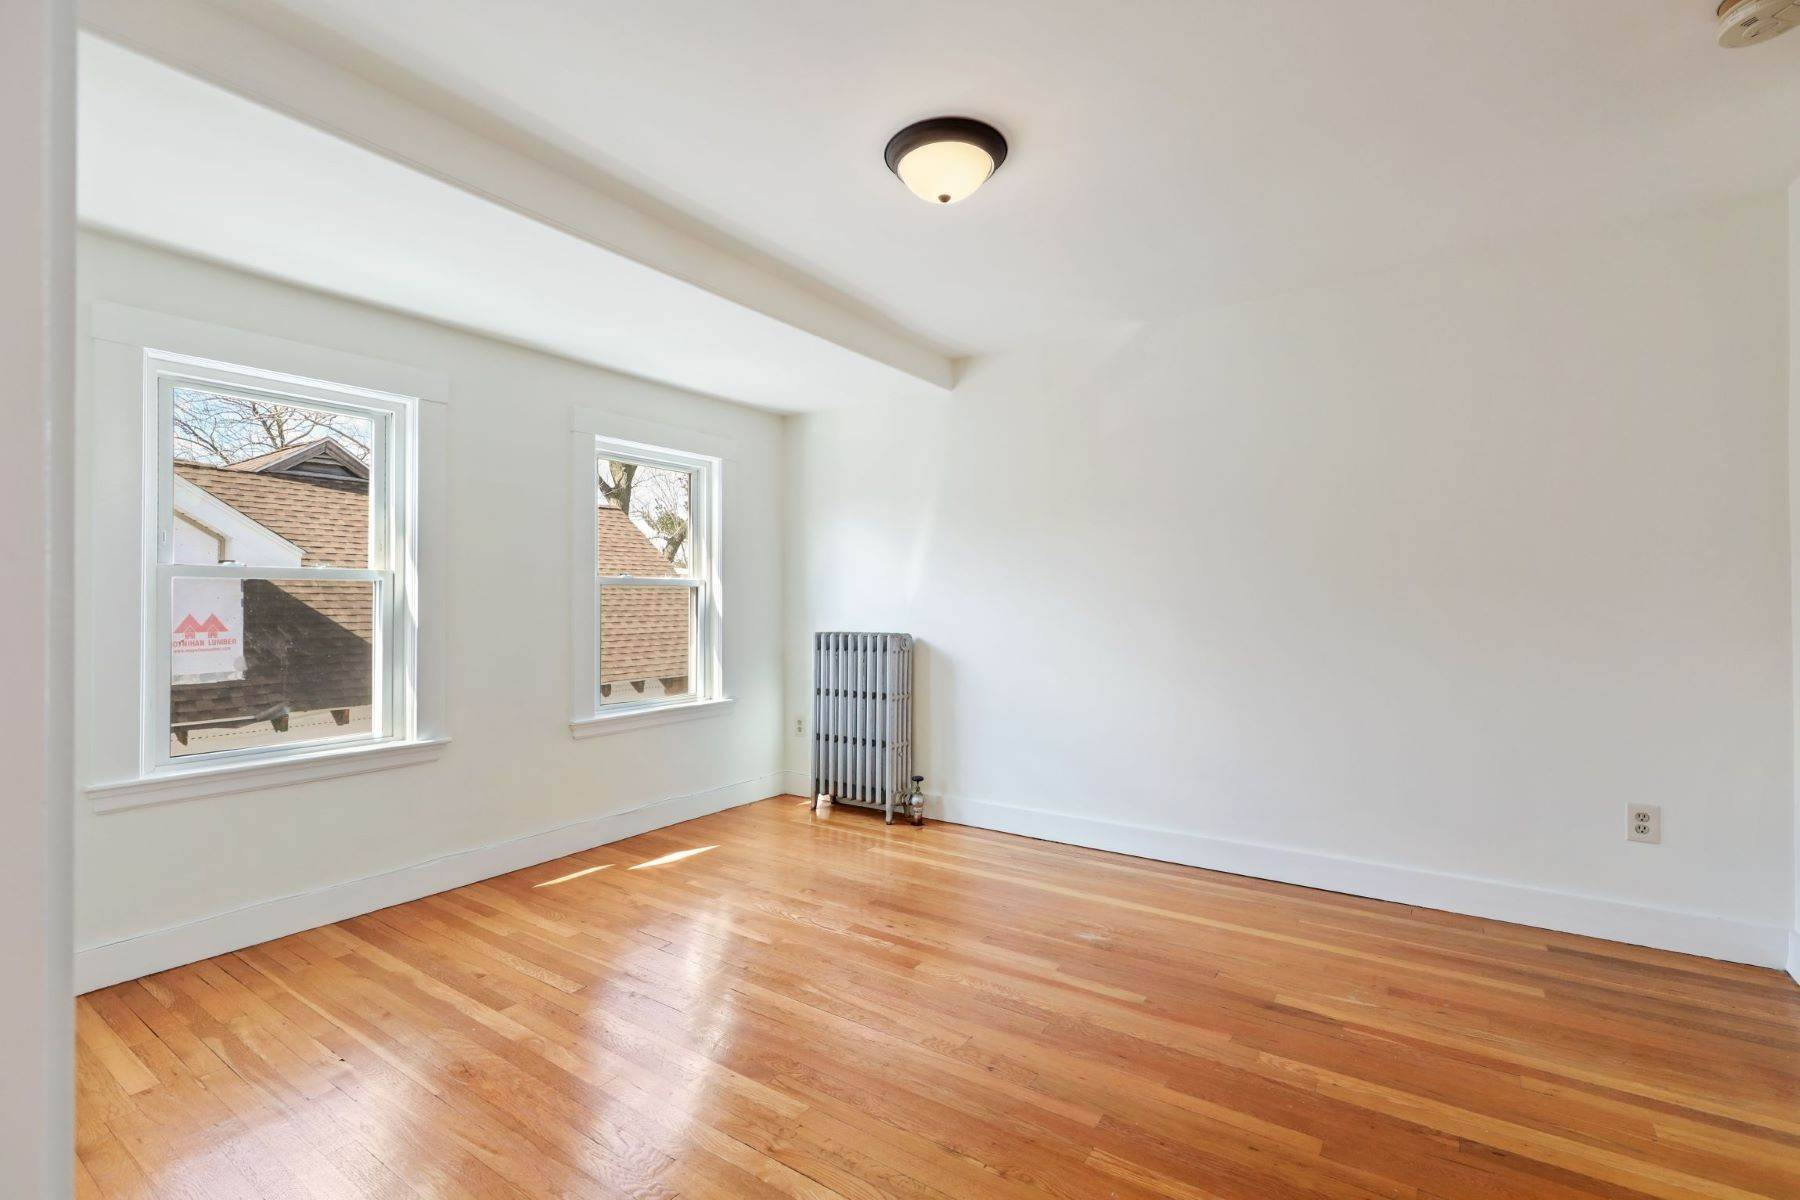 3. Condominiums for Sale at 26 Wenham St, 3 Boston, Massachusetts 02130 United States